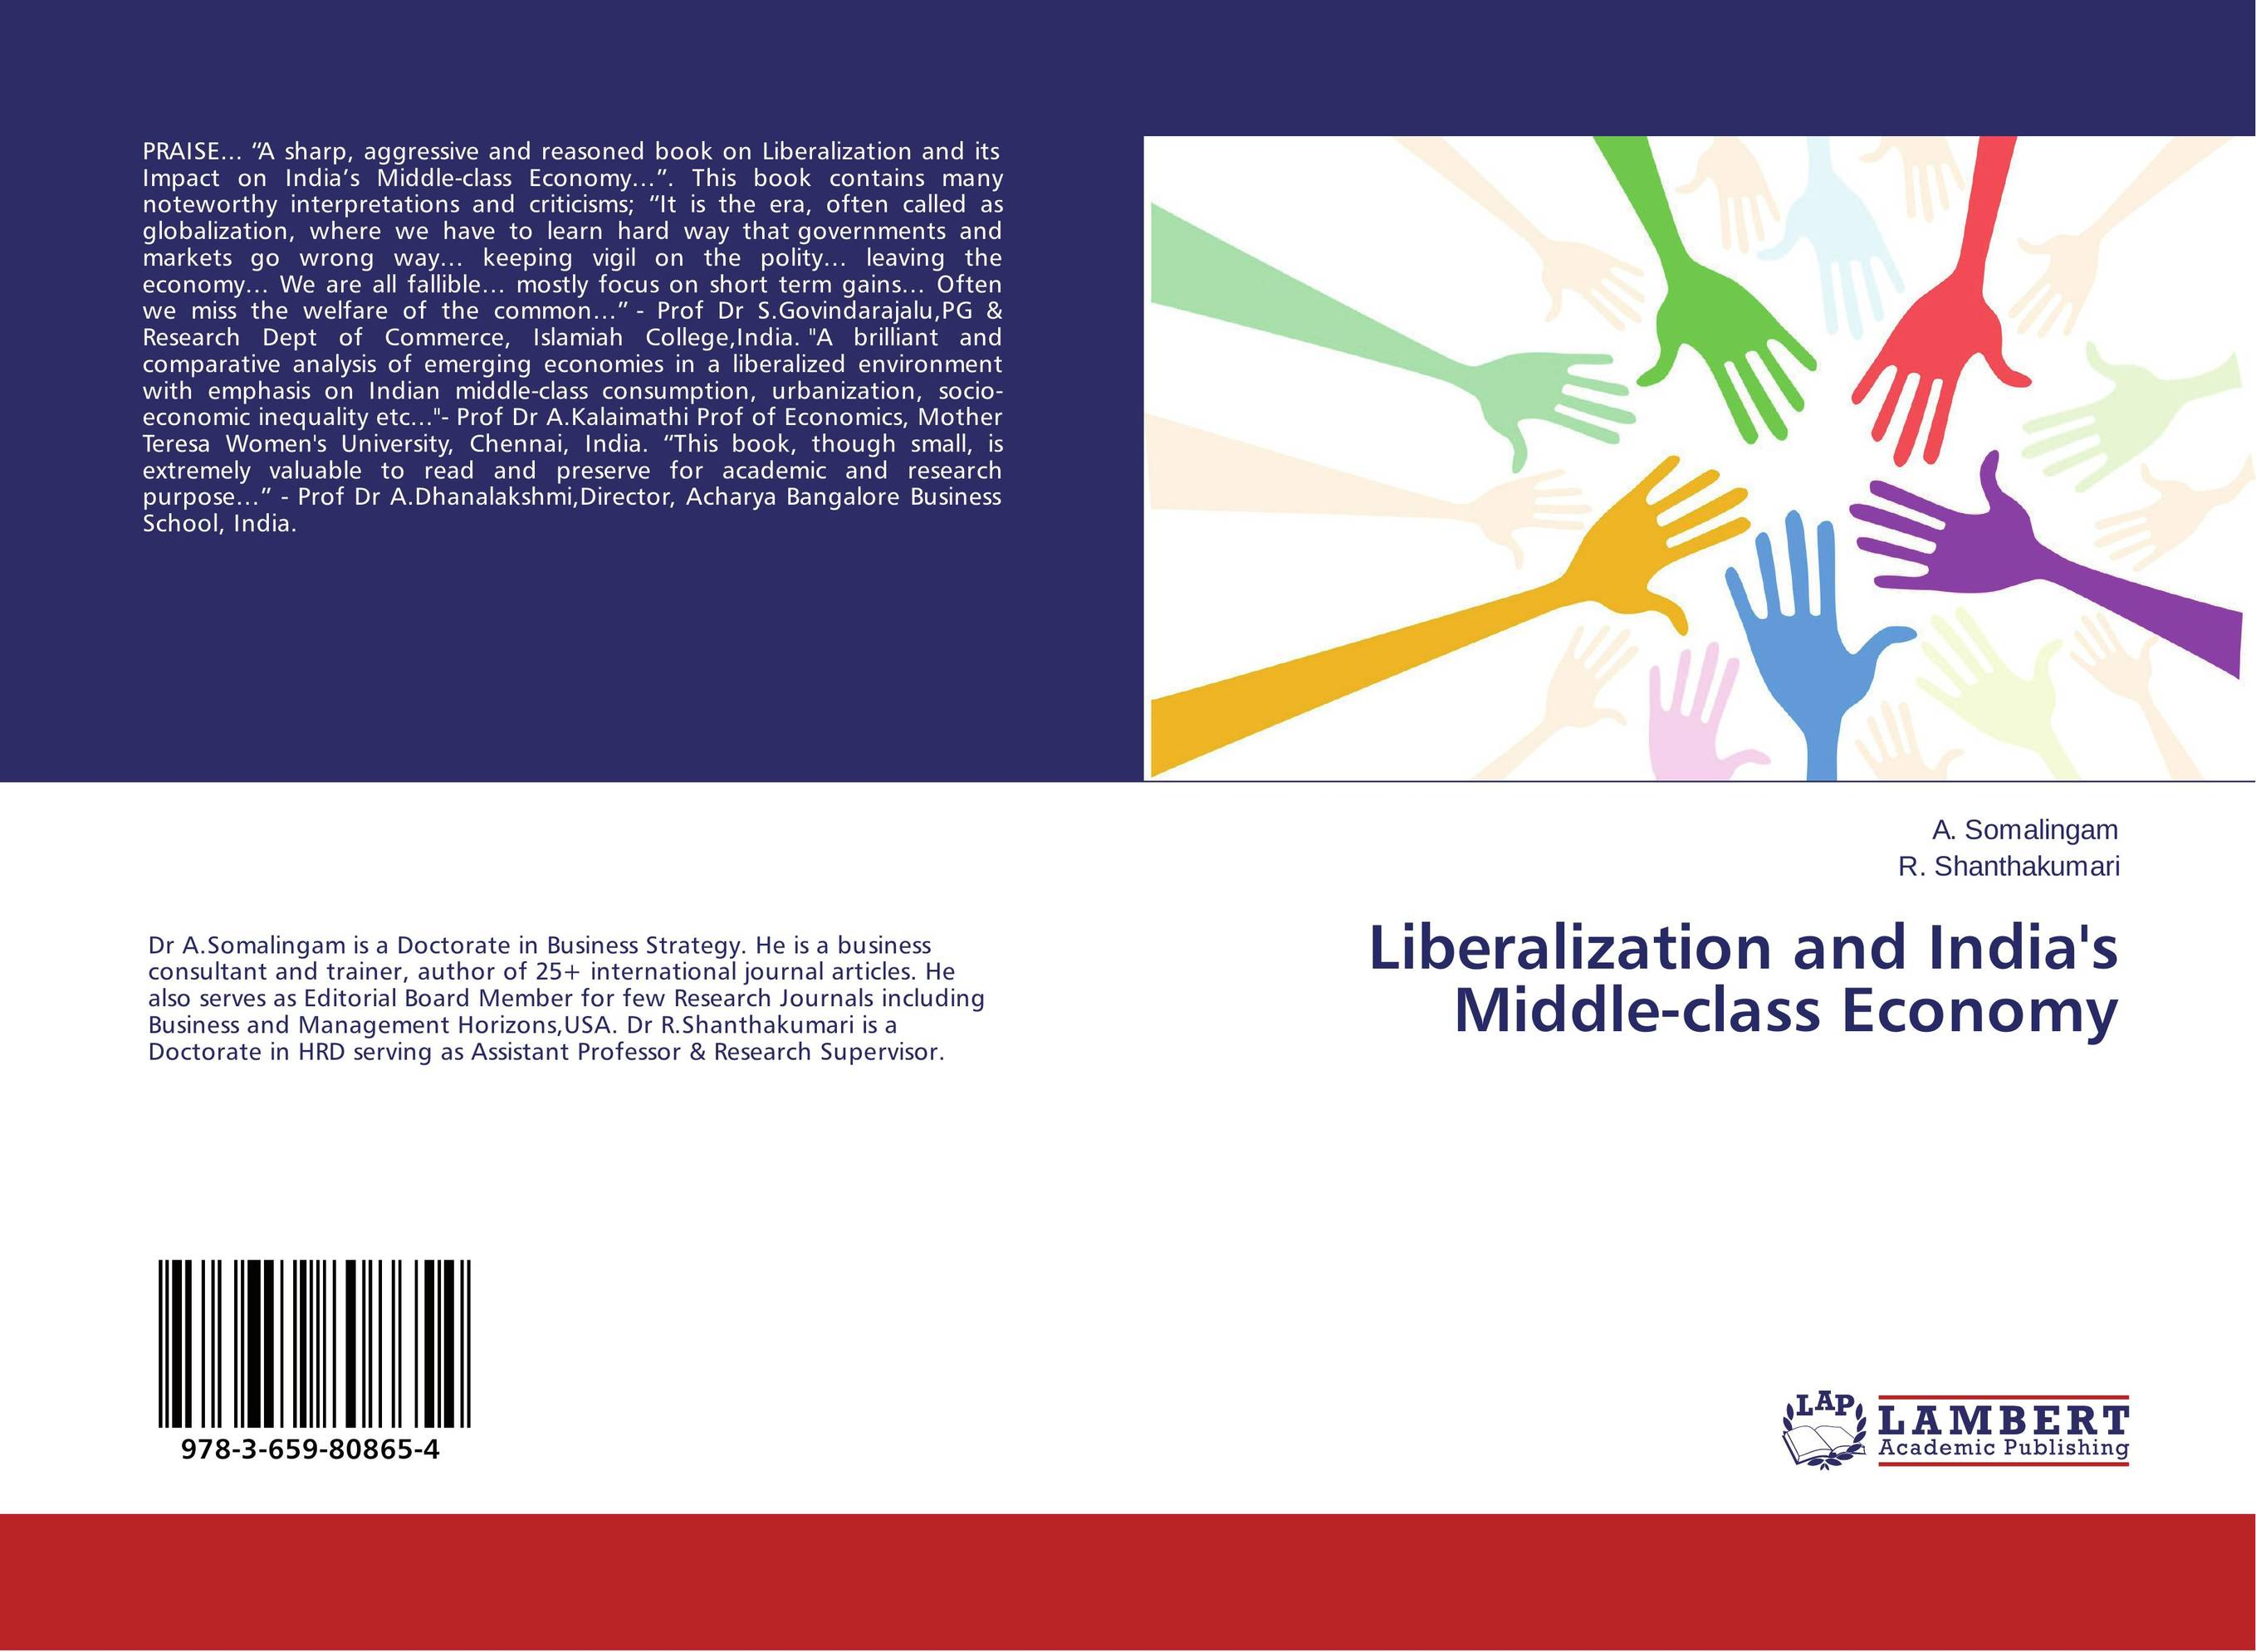 essay on liberalisation of indian economy The economic liberalisation in india refers to the liberalisation, initiated in 1991, of the country's economic policies, with the goal of making the economy more market- and service-oriented, and expanding the role of private and foreign investment specific changes include a reduction in import tariffs, deregulation of markets, reduction of.